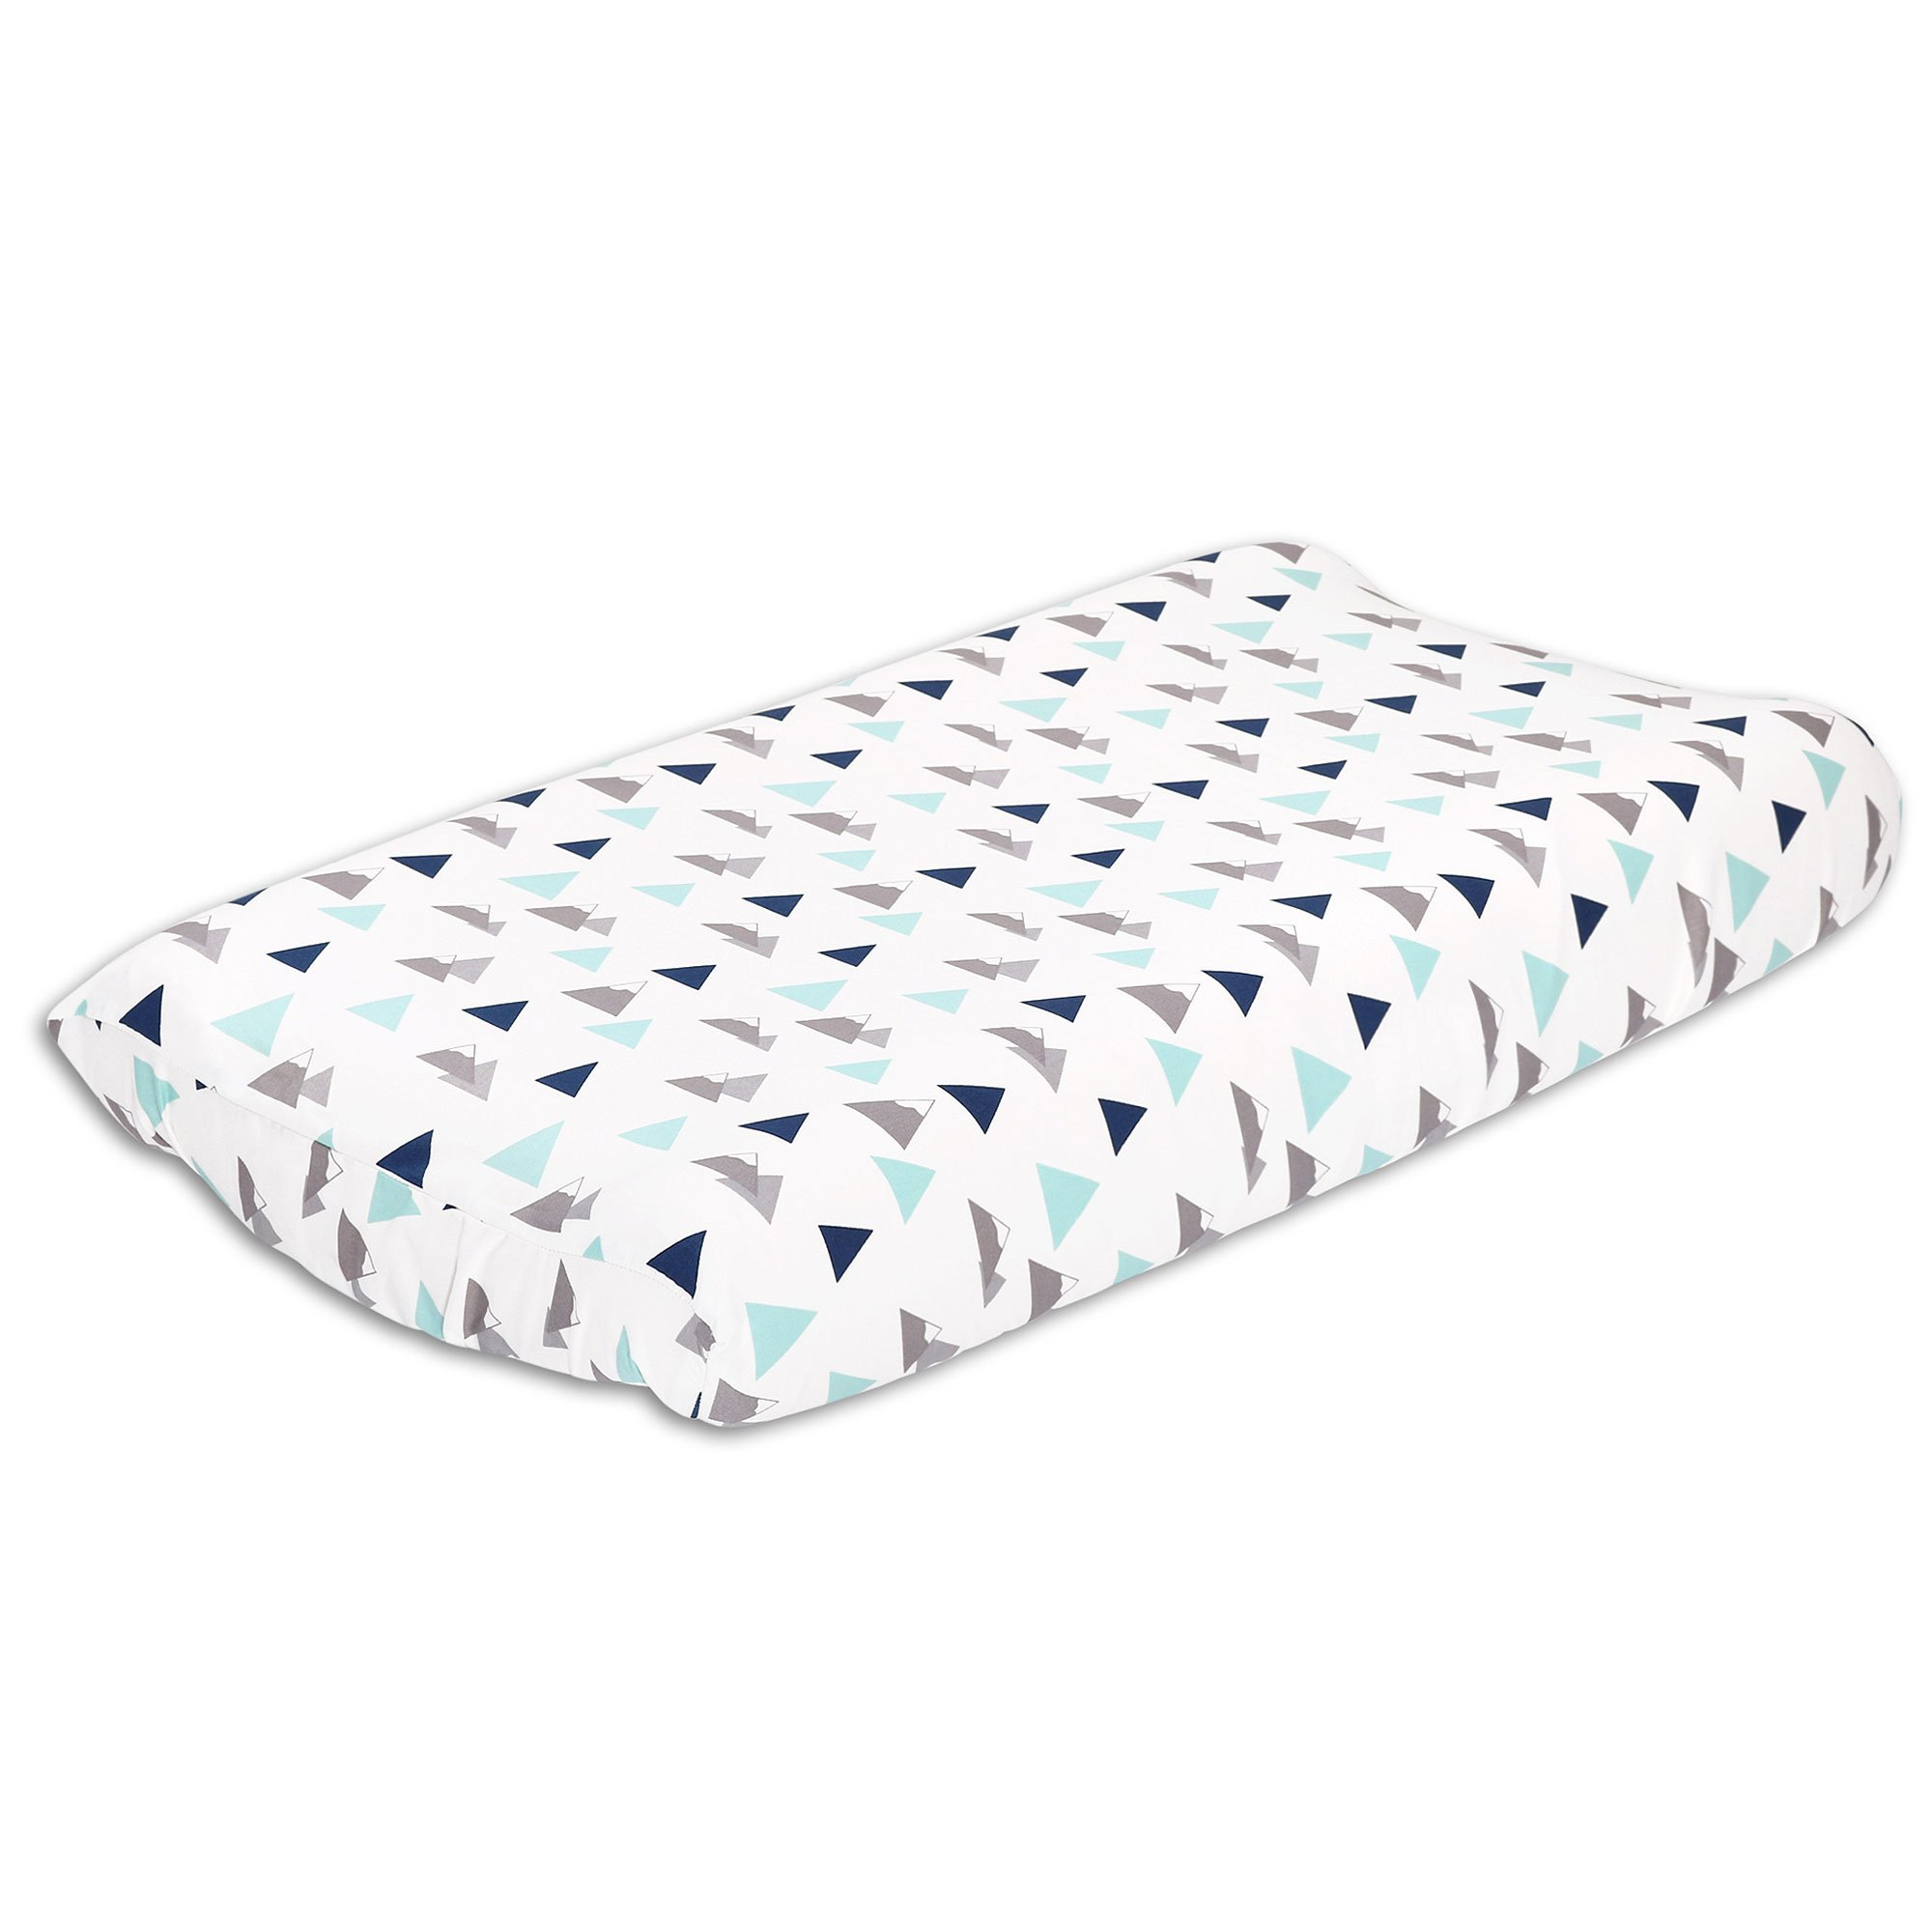 Woodland Trail Mountain Theme Changing Pad Cover by The Peanut Shell